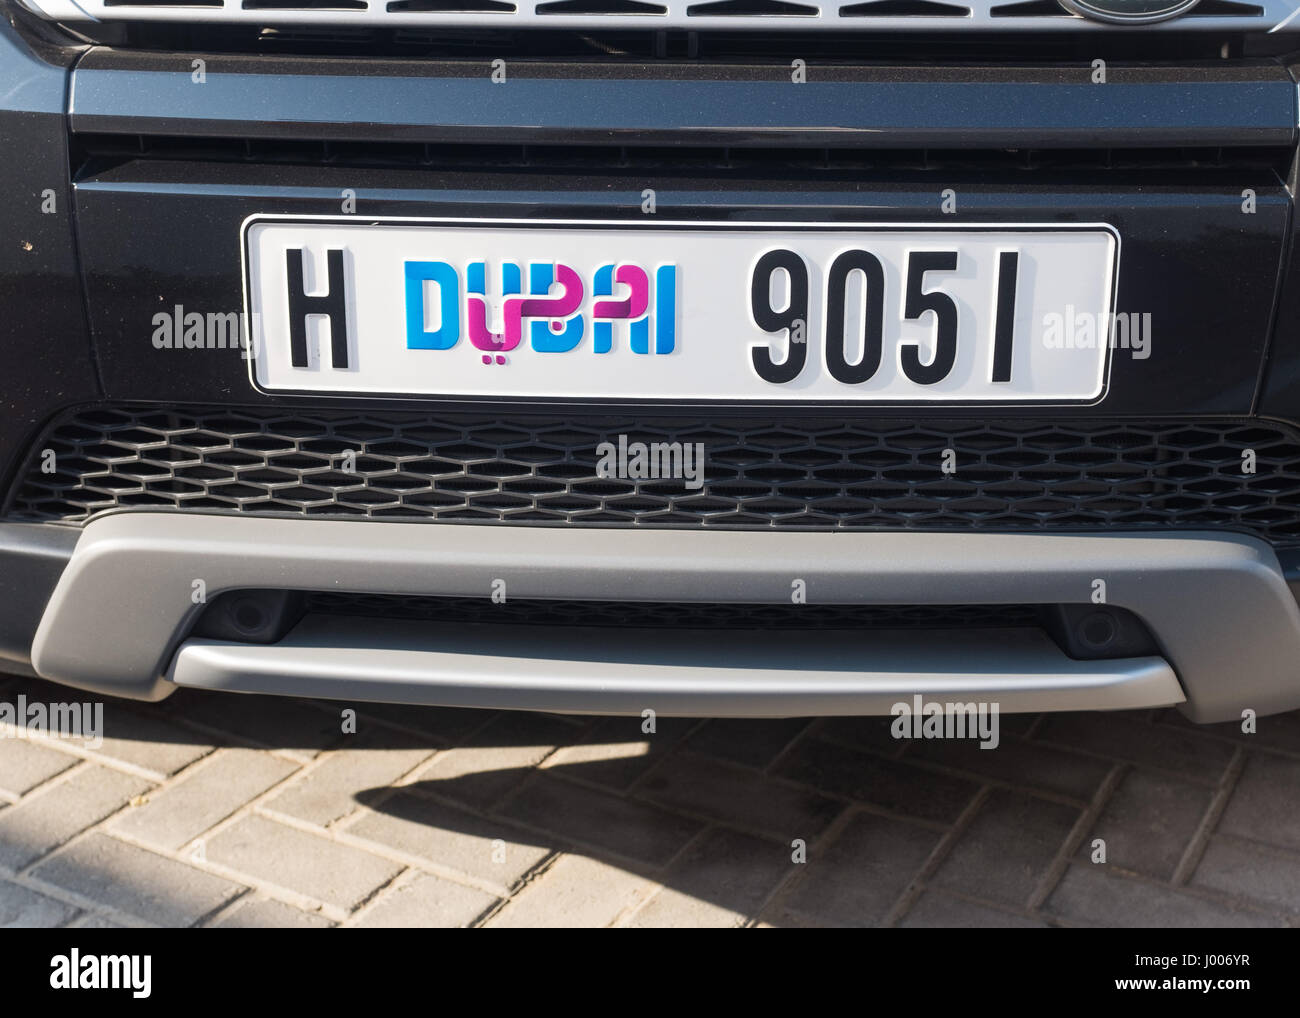 Glasgow Number Plate Letters